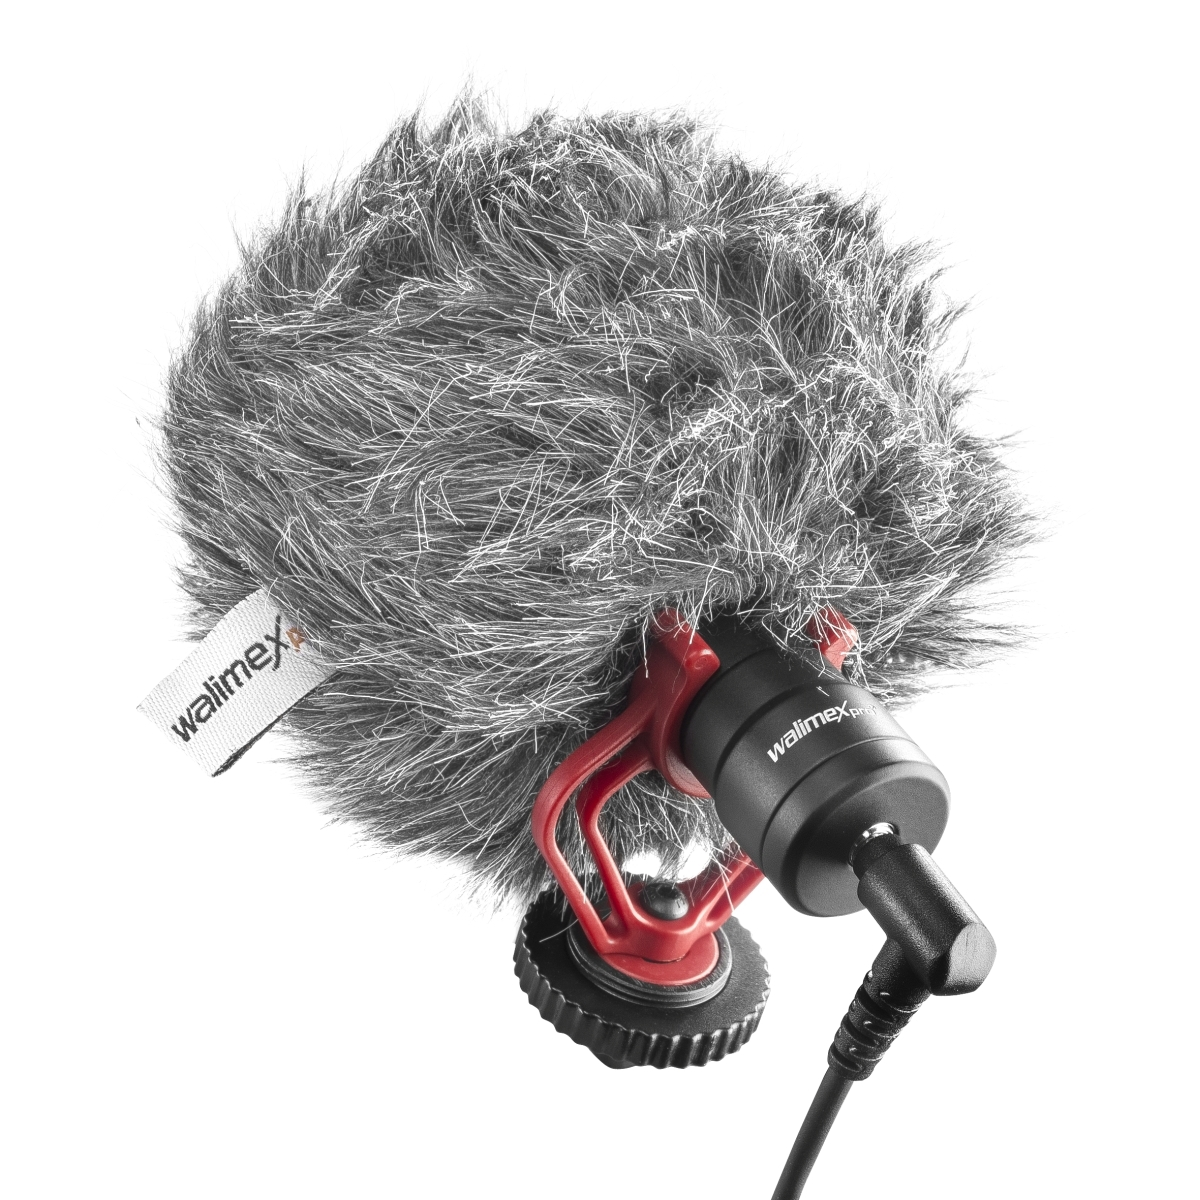 Walimex pro directional microphone VLOG